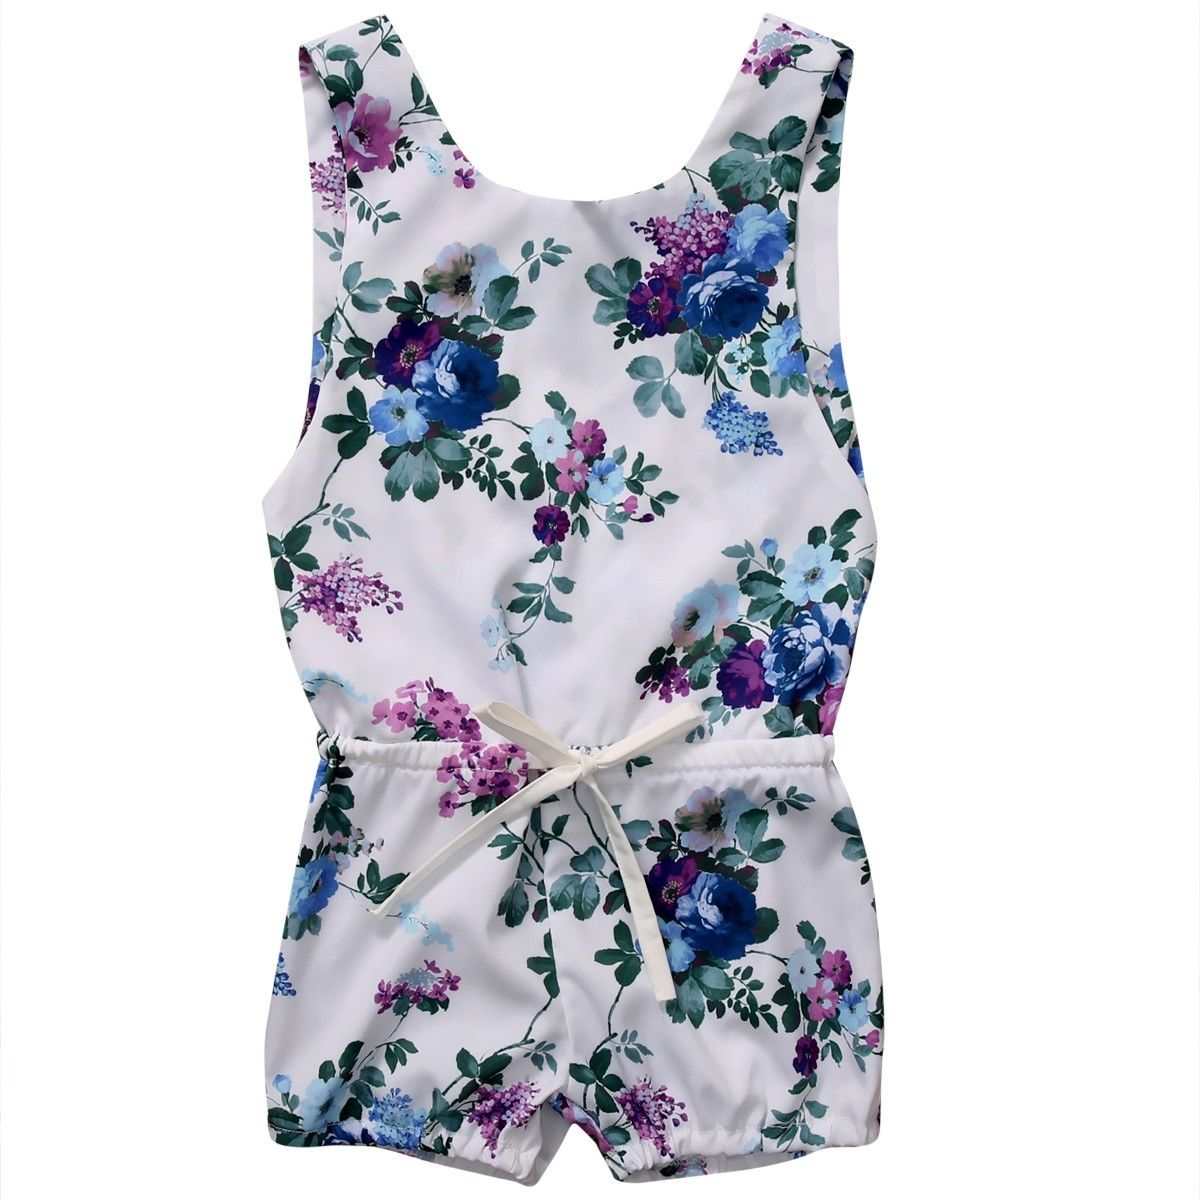 2017 Summer Newborn Toddler Baby Girls Romper Floral Backless Romper Jumpsuit One-pieces Sunsuit Clothes 0-4Y